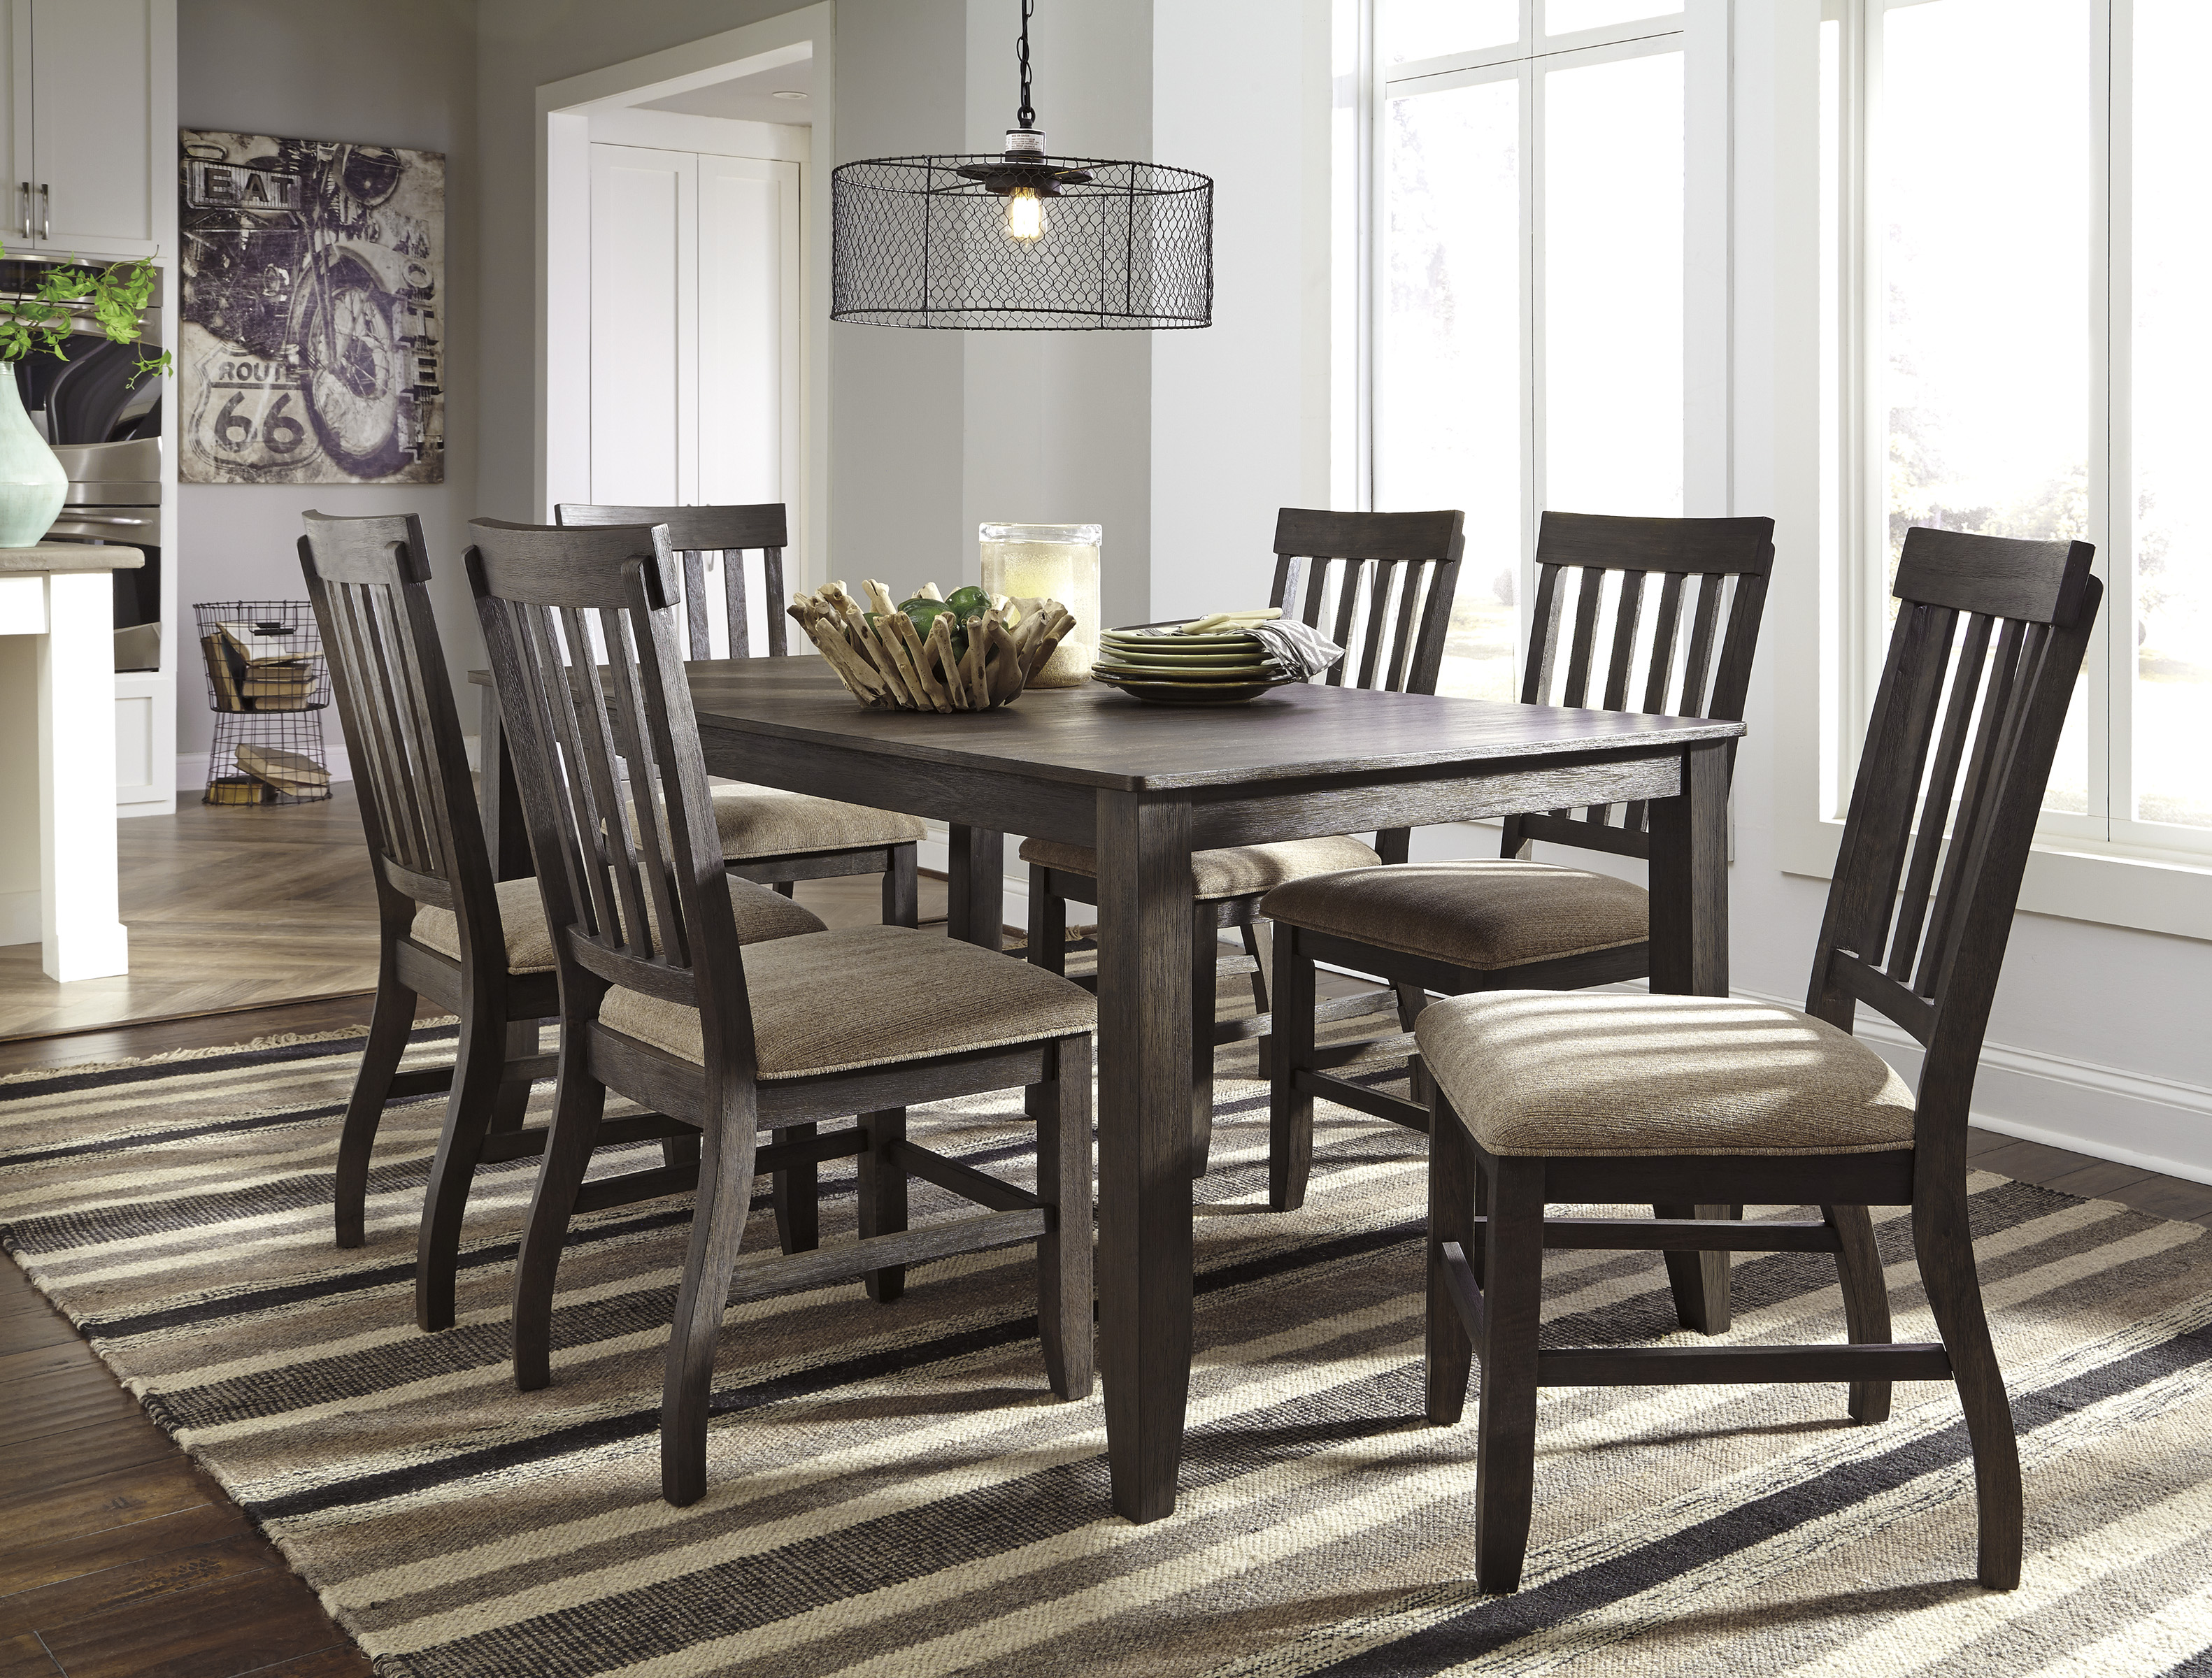 Dresbar Brown  Dining Table and Six Chairs  / $22.99 A Week